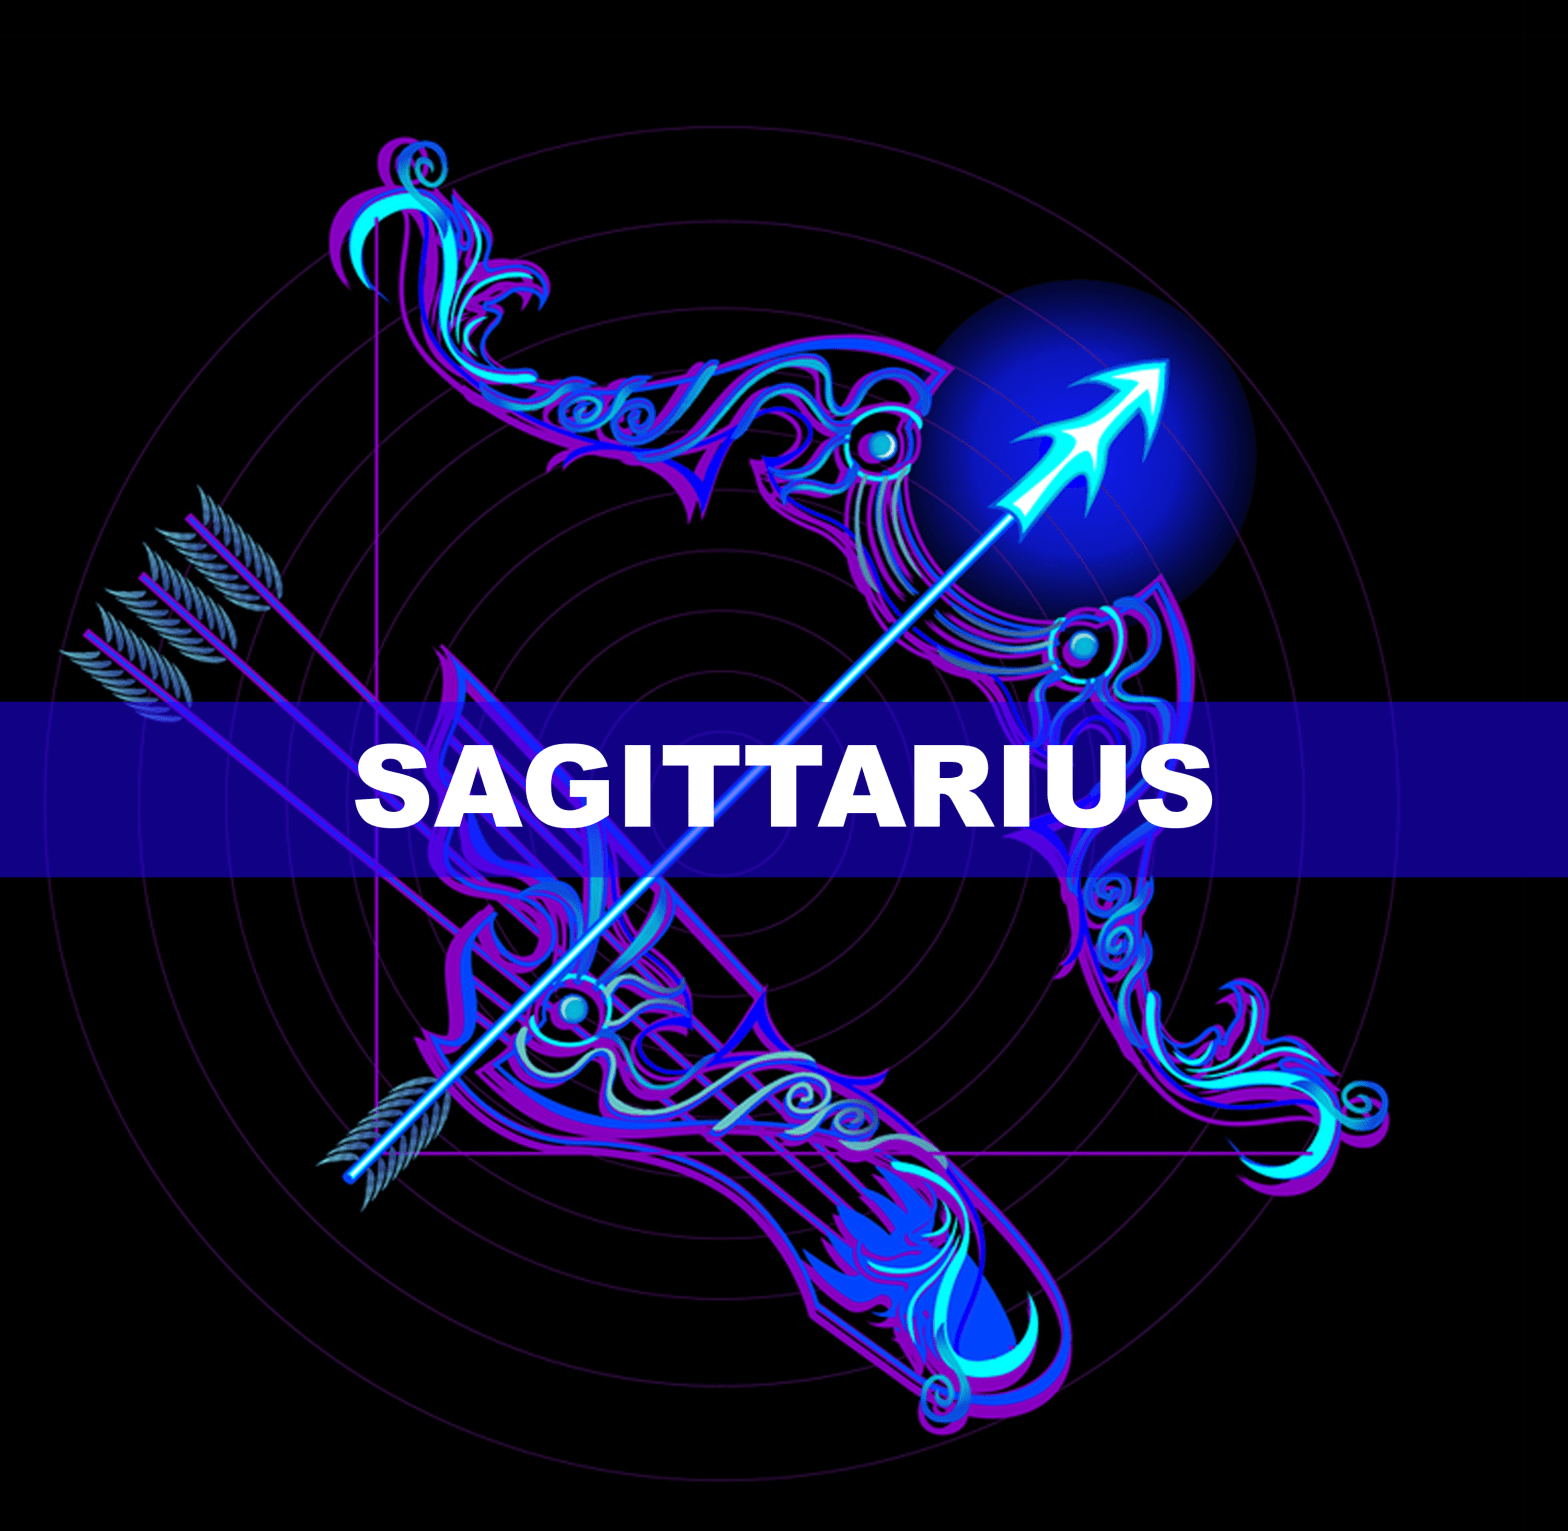 Sagittarius Daily Horoscope- Get Your Prediction for 19th October 2020